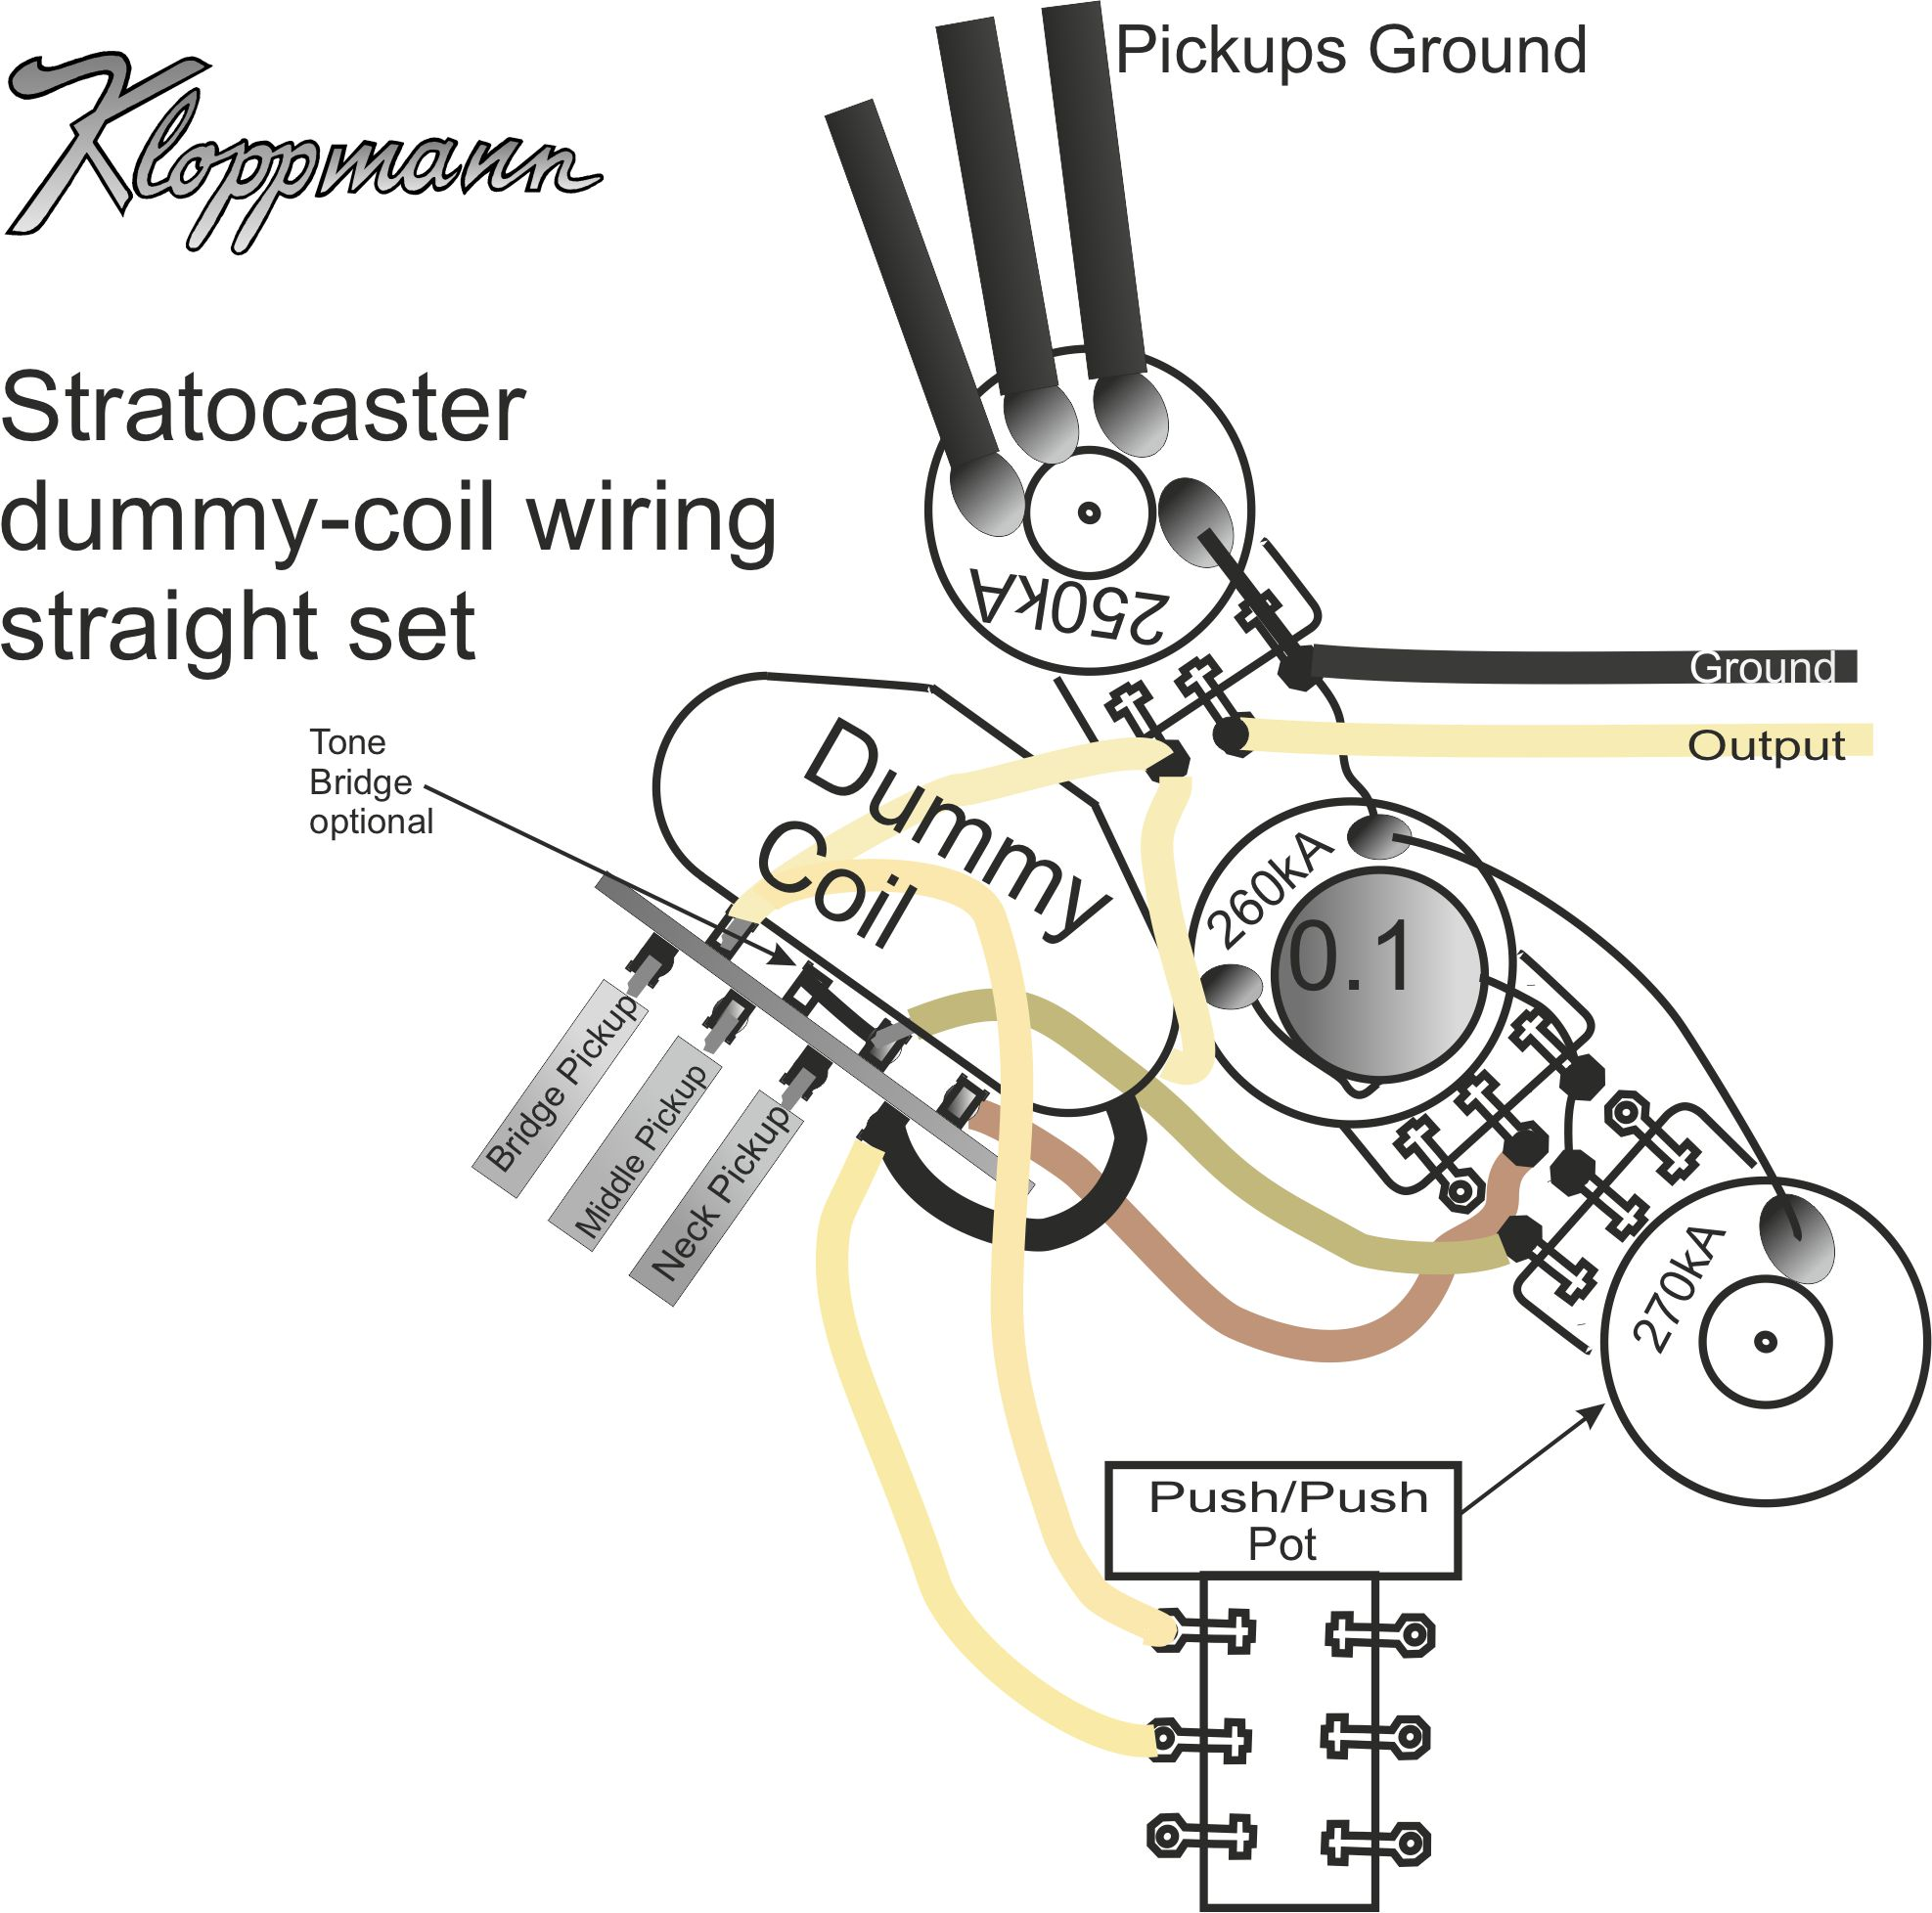 p 90 wiring diagram single pickup with Strat P90 Wiring Diagram on 111518342167 together with Lindy Fralin P90 Wiring Diagram besides Mojotone Humbucker Diagram further R72 Wiring Diagram additionally P Fr3t 18e243 Ec Wire Diagram.